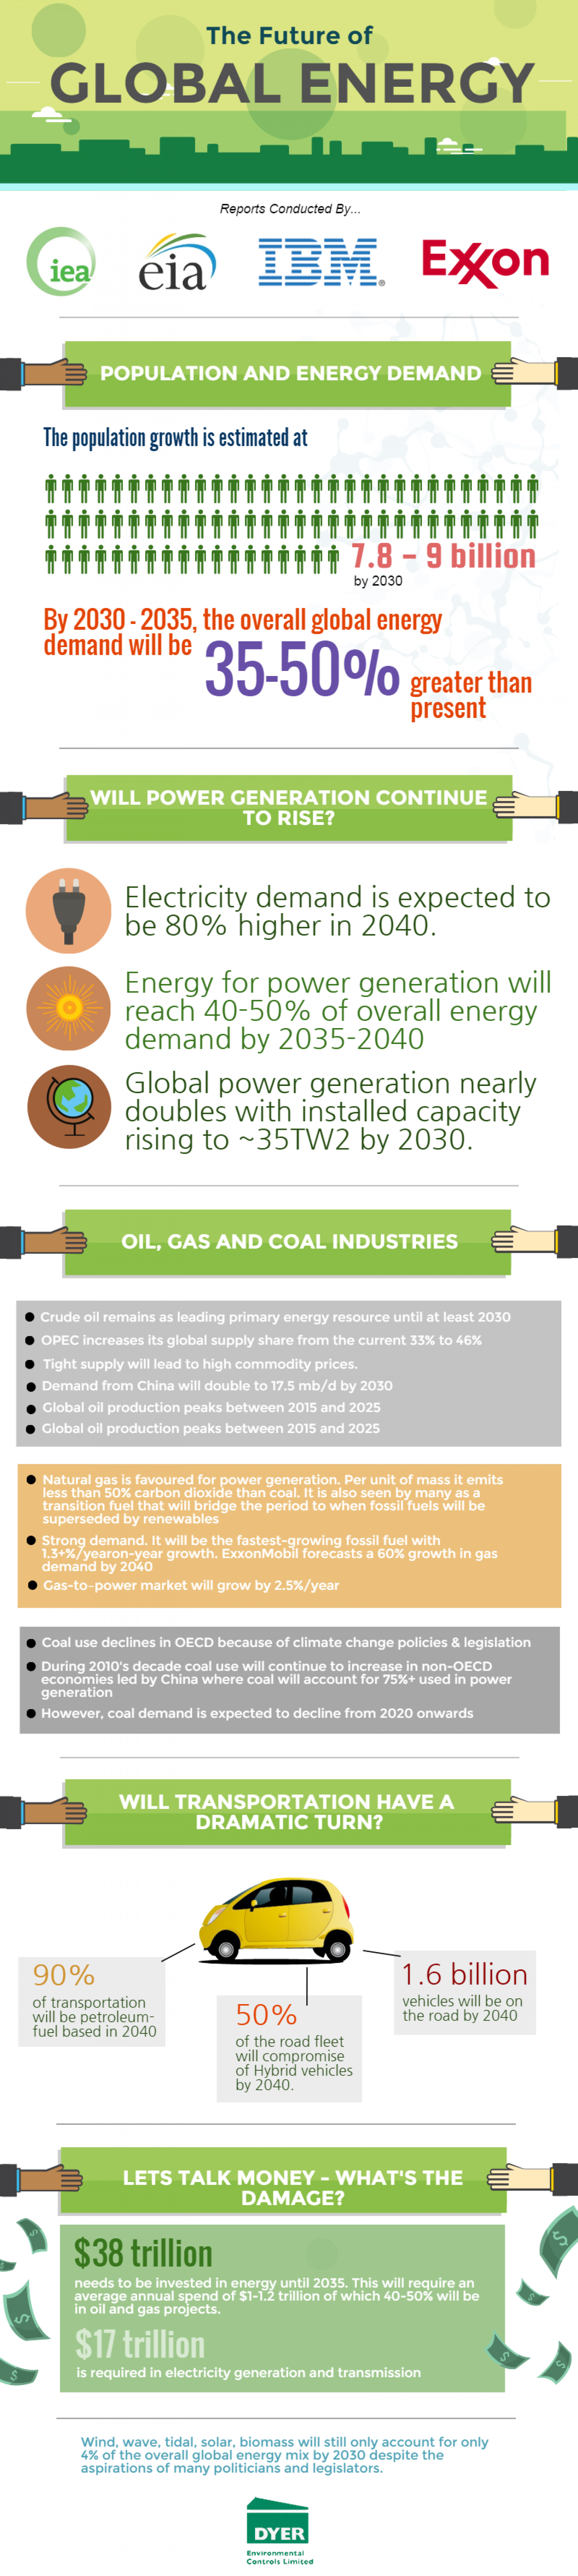 Experts Reveal The Future Of Global Energy Infographic